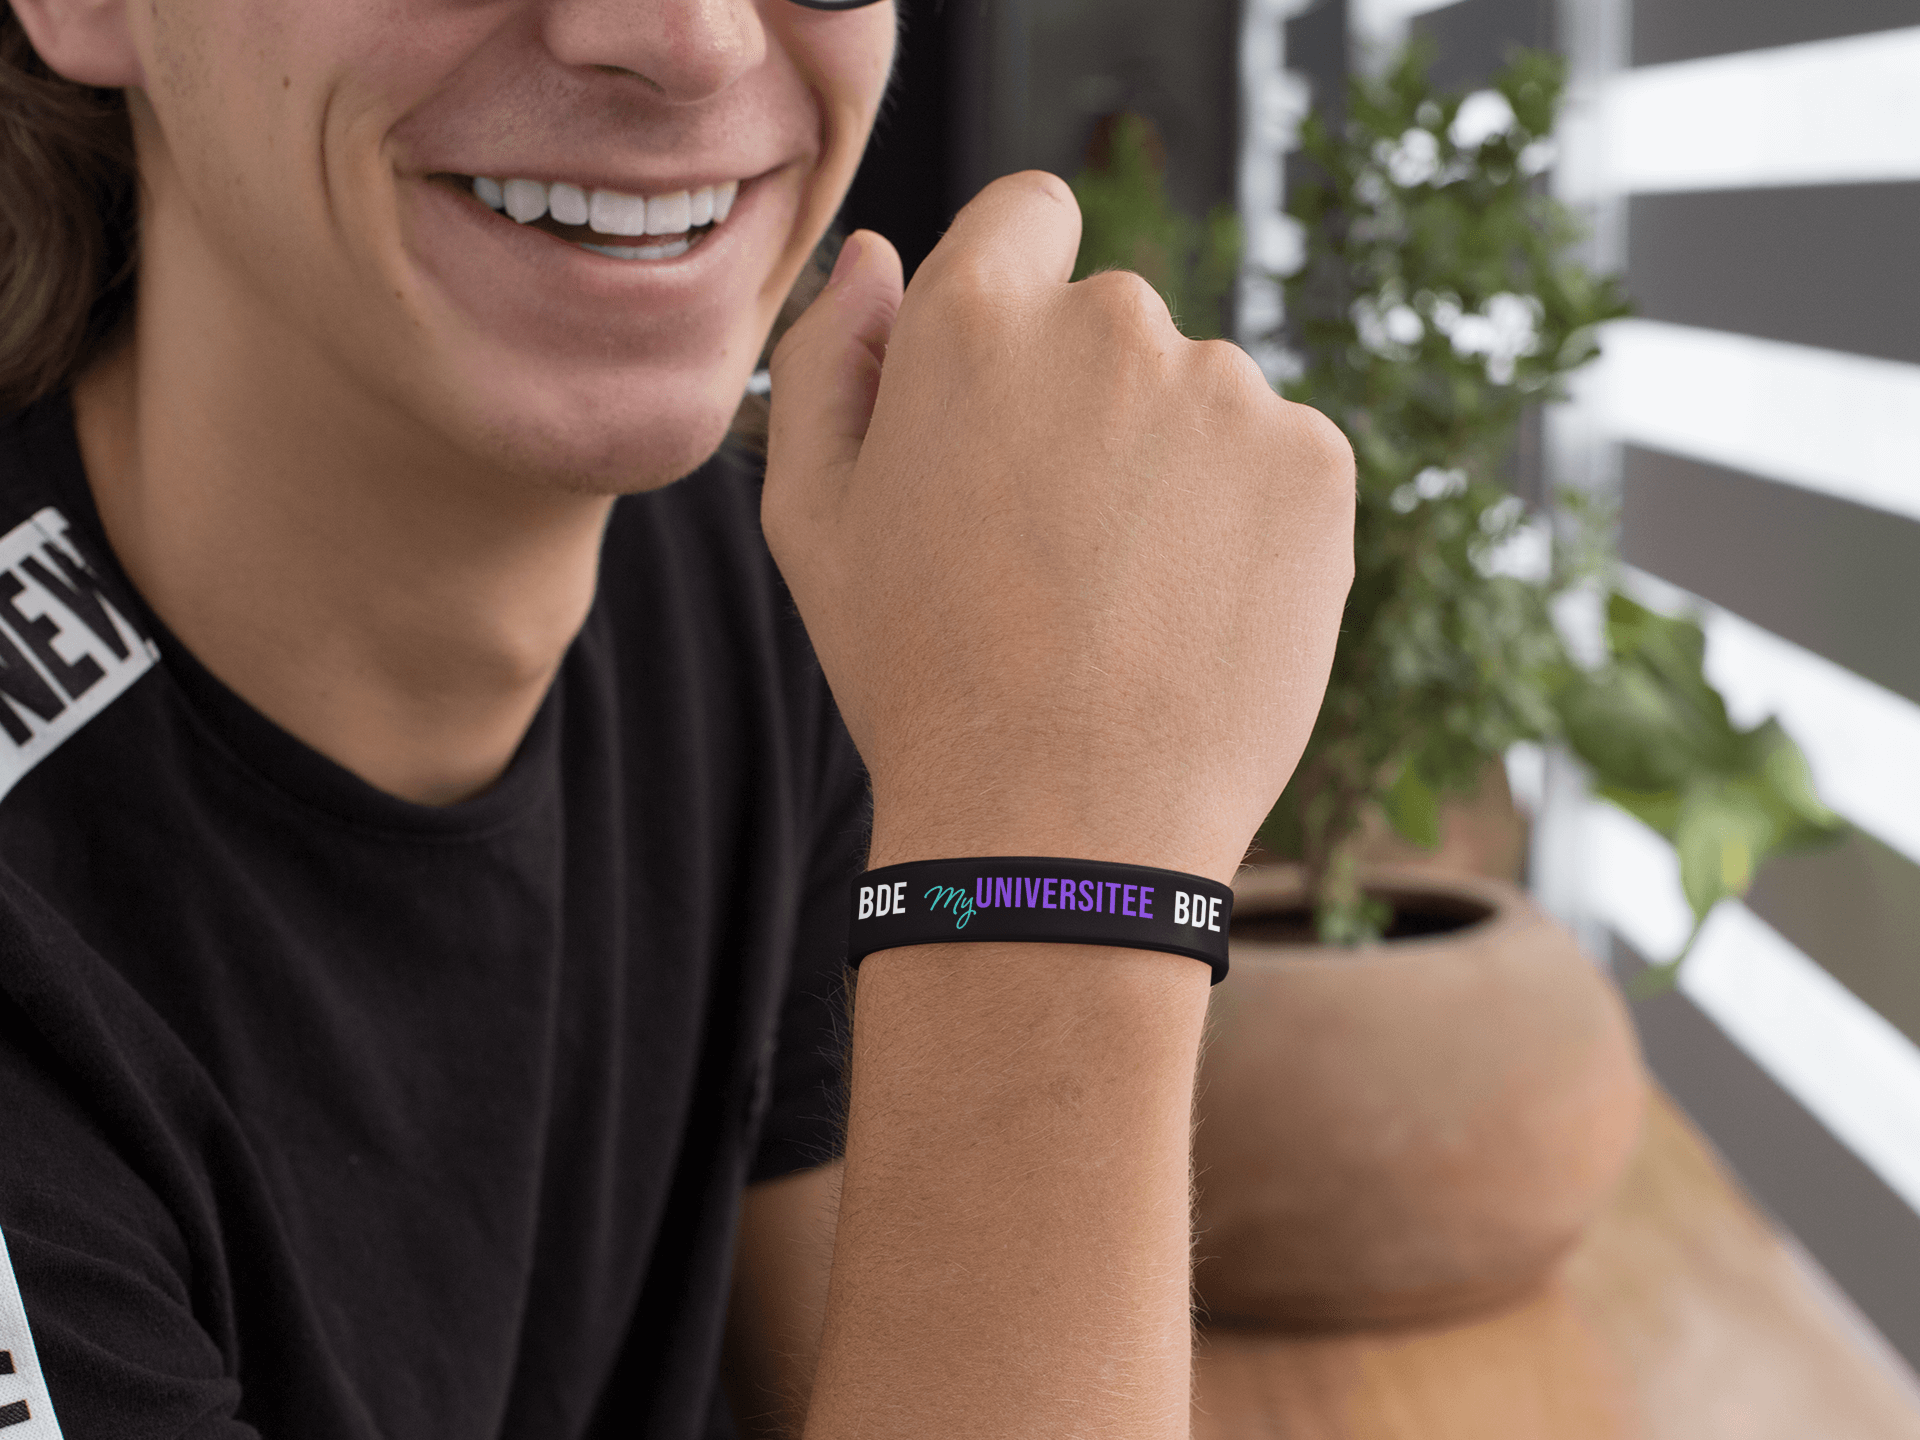 silicone-wristband-mockup-featuring-a-smiling-guy-by-a-plant-pot-28244-2